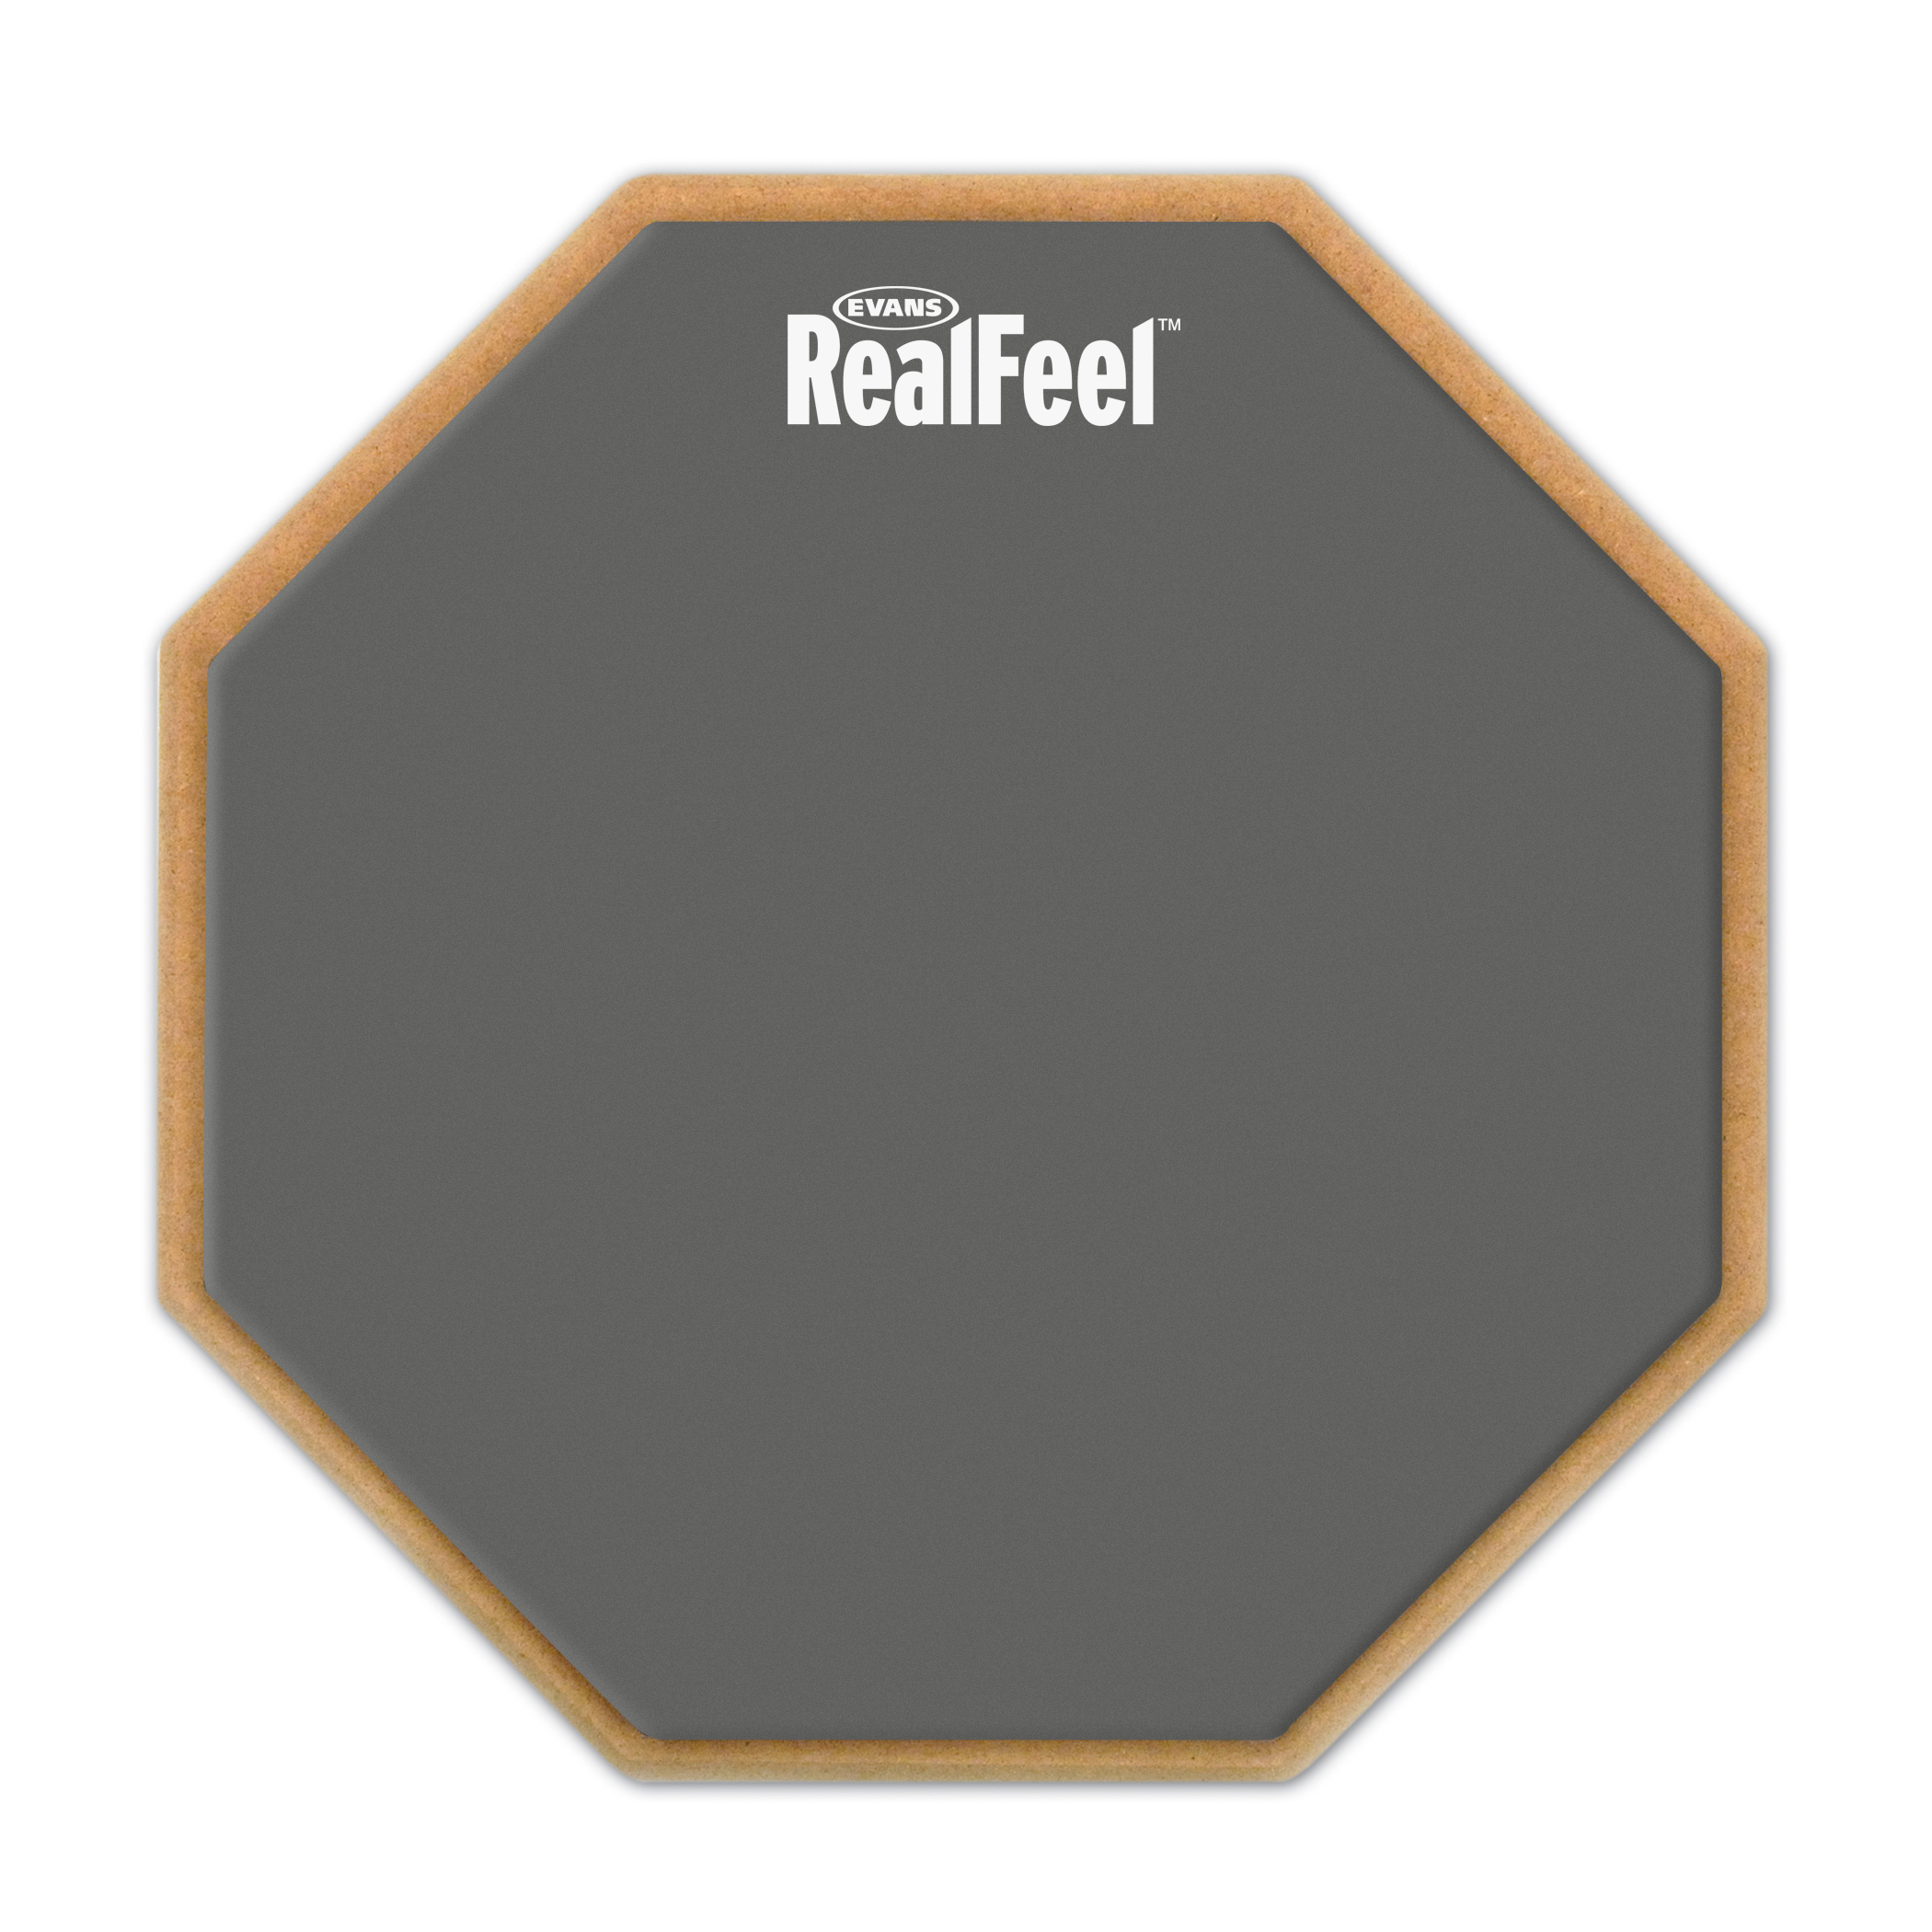 RealFeel by Evans 2-Sided Practice Pad 6 Inch